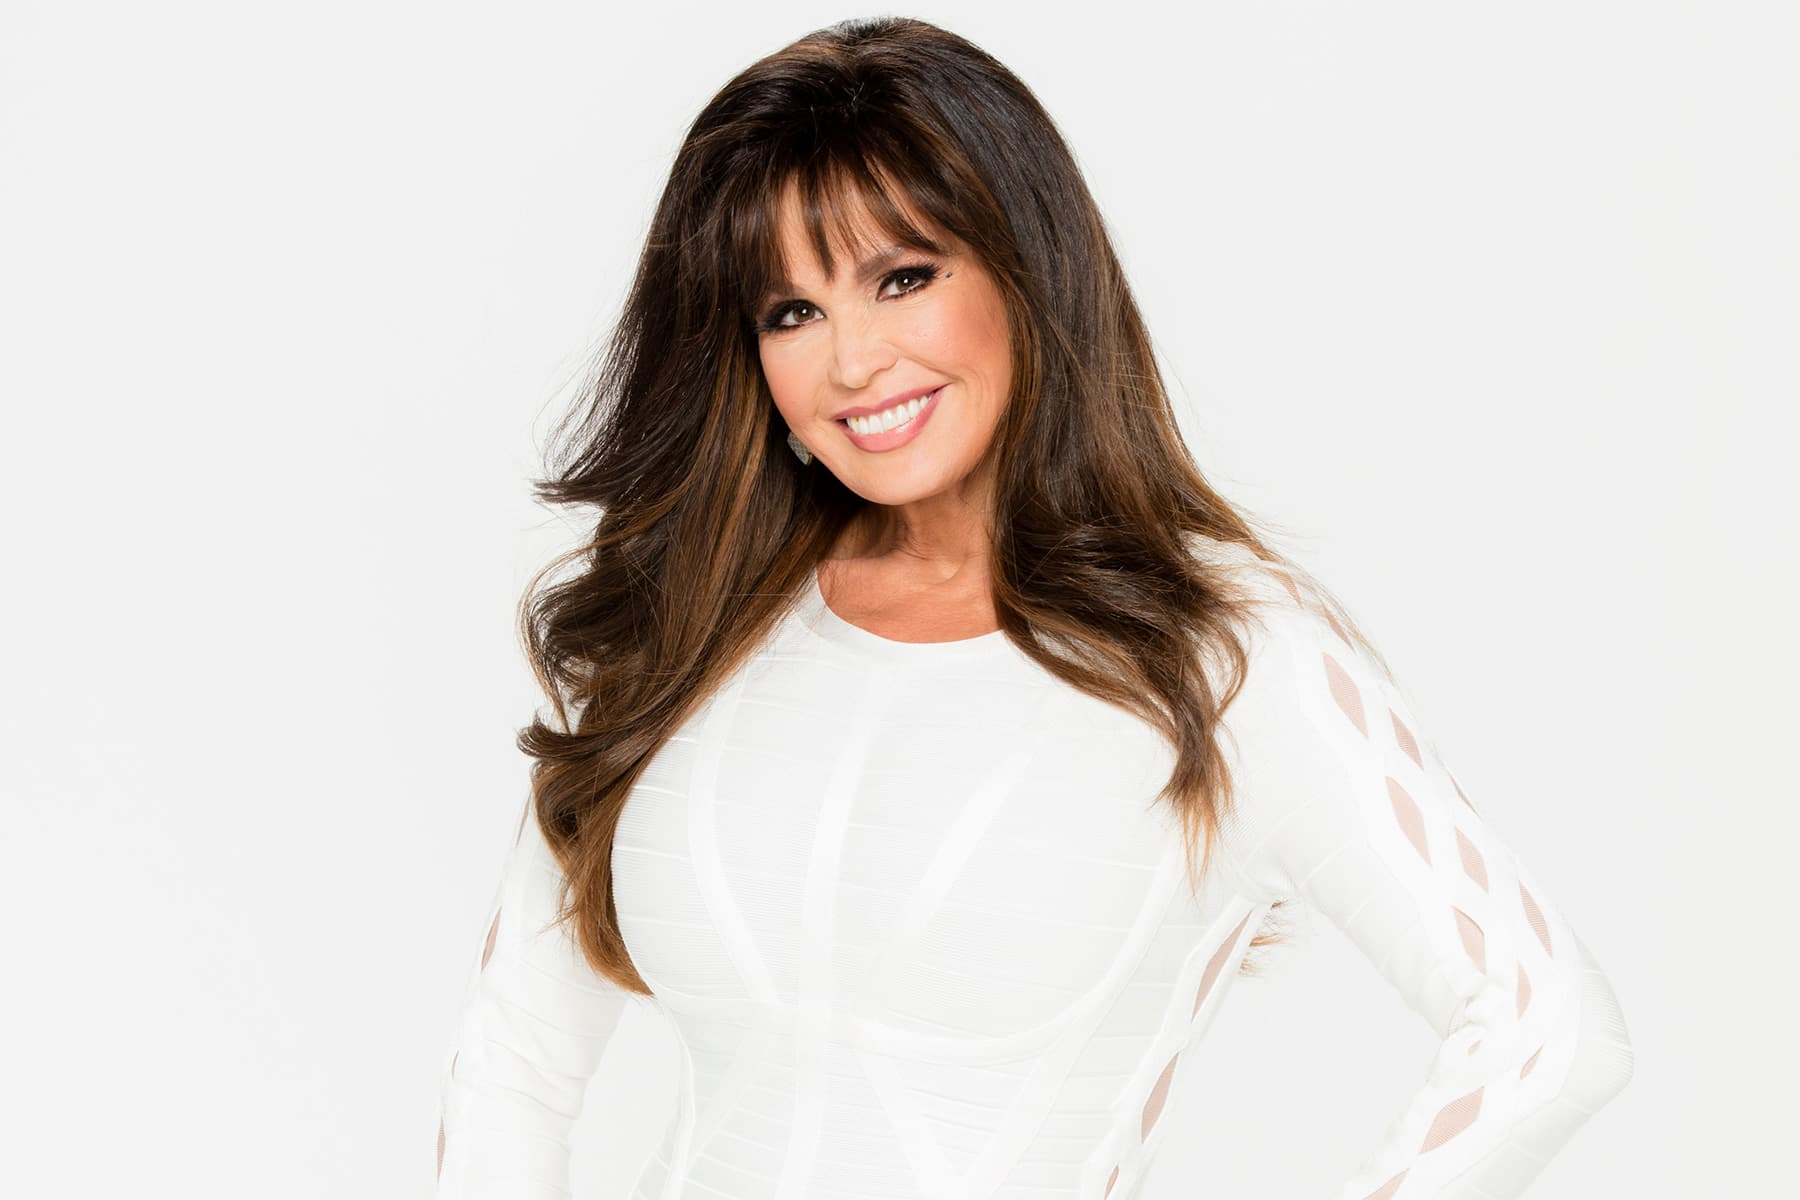 Marie Osmond Says Her 'Strong Belief in God' Helped Her Avoid Curse That Often Follows Childhood Stardom